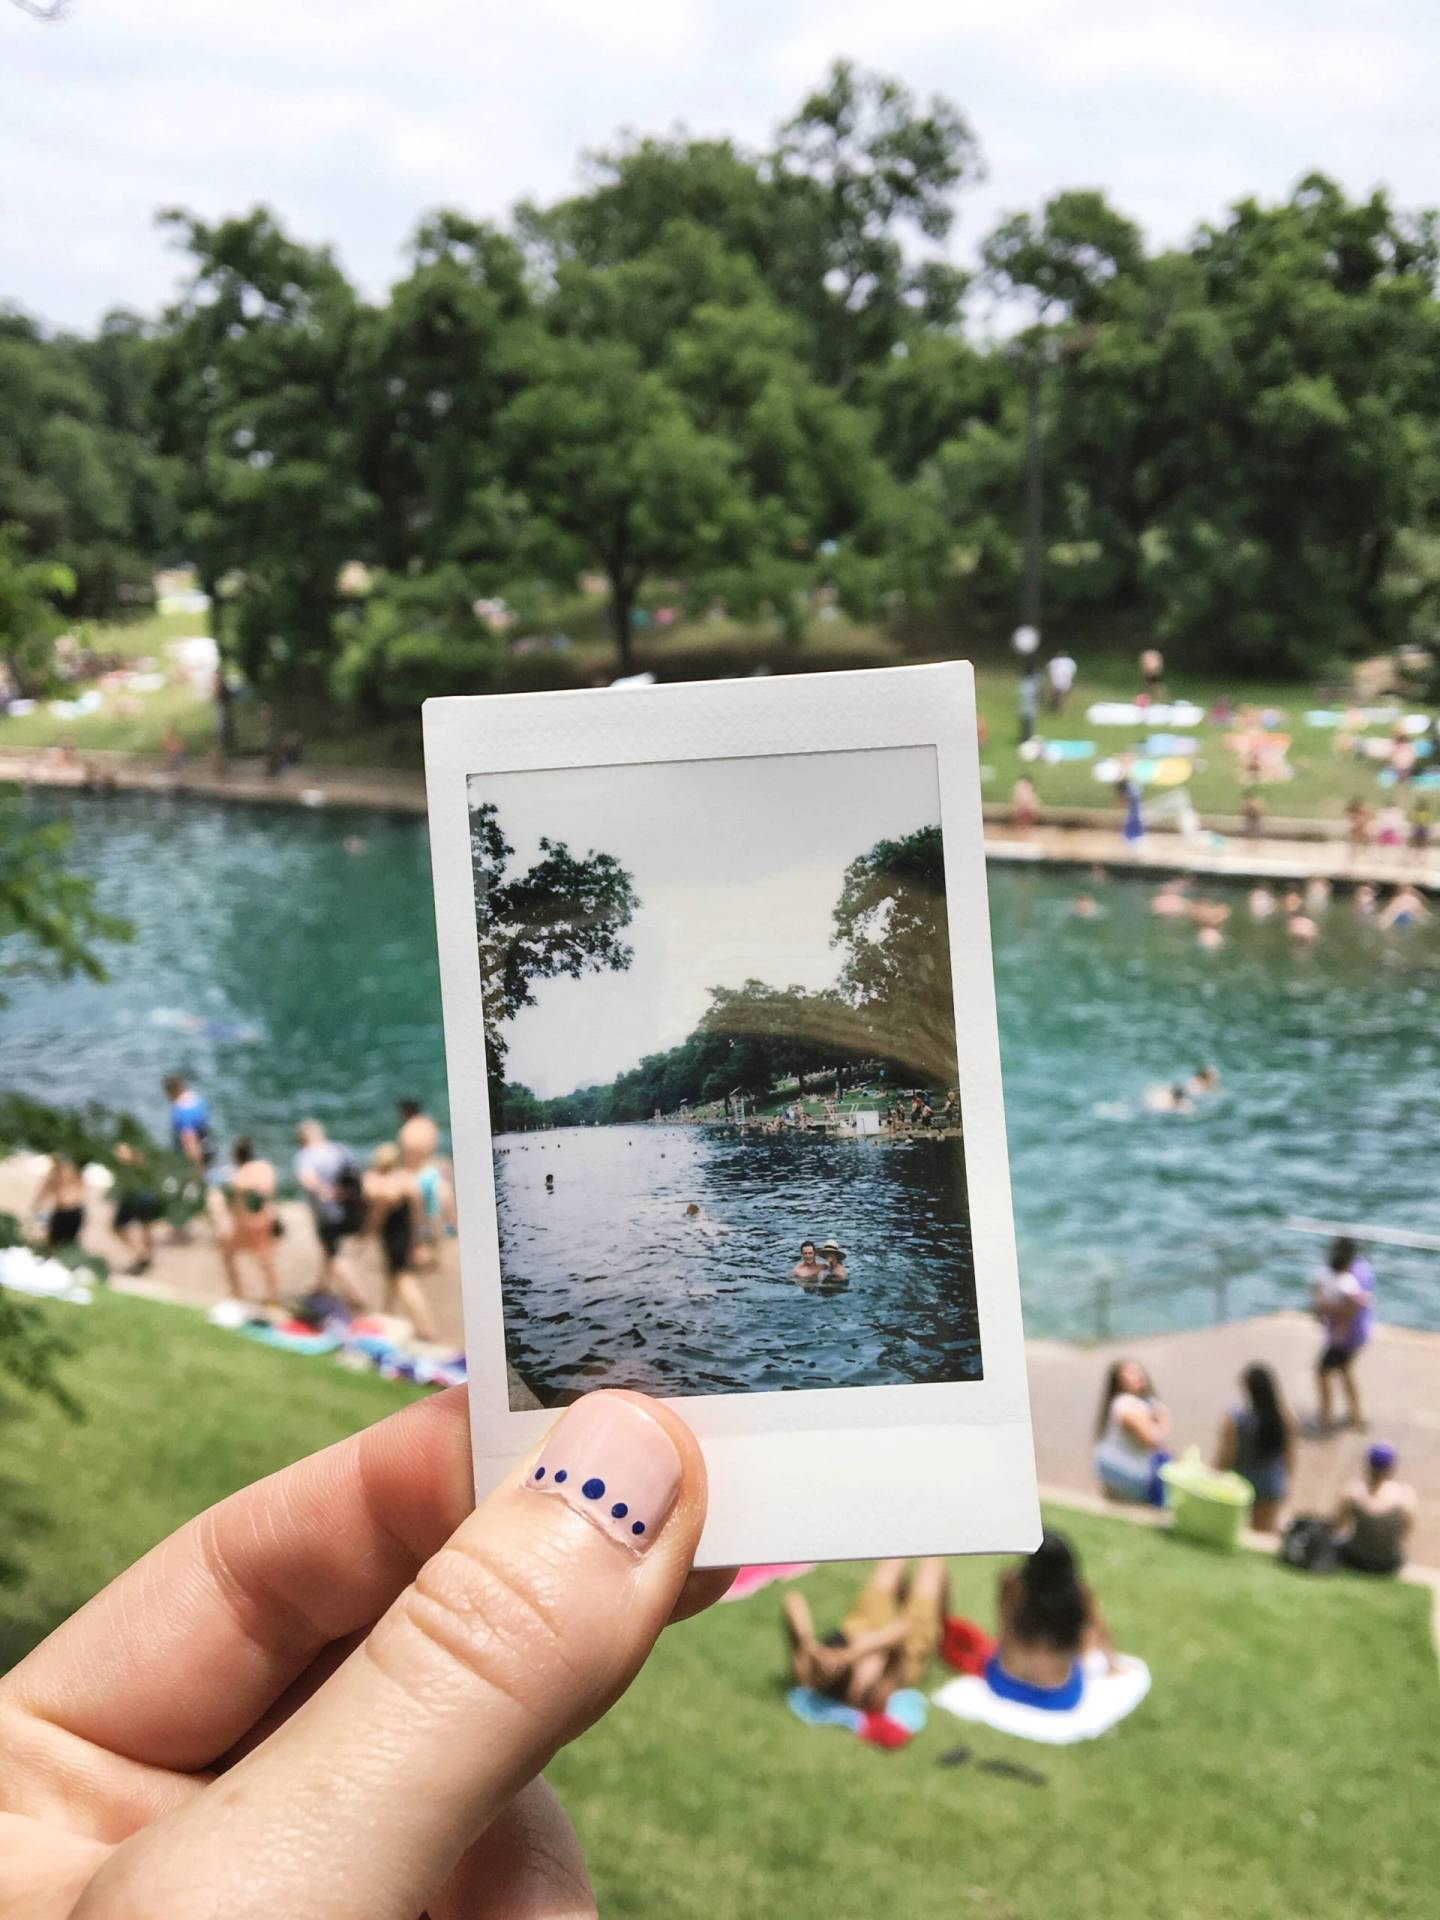 Memorial Day Weekend at Barton Springs Pool in Austin Texas